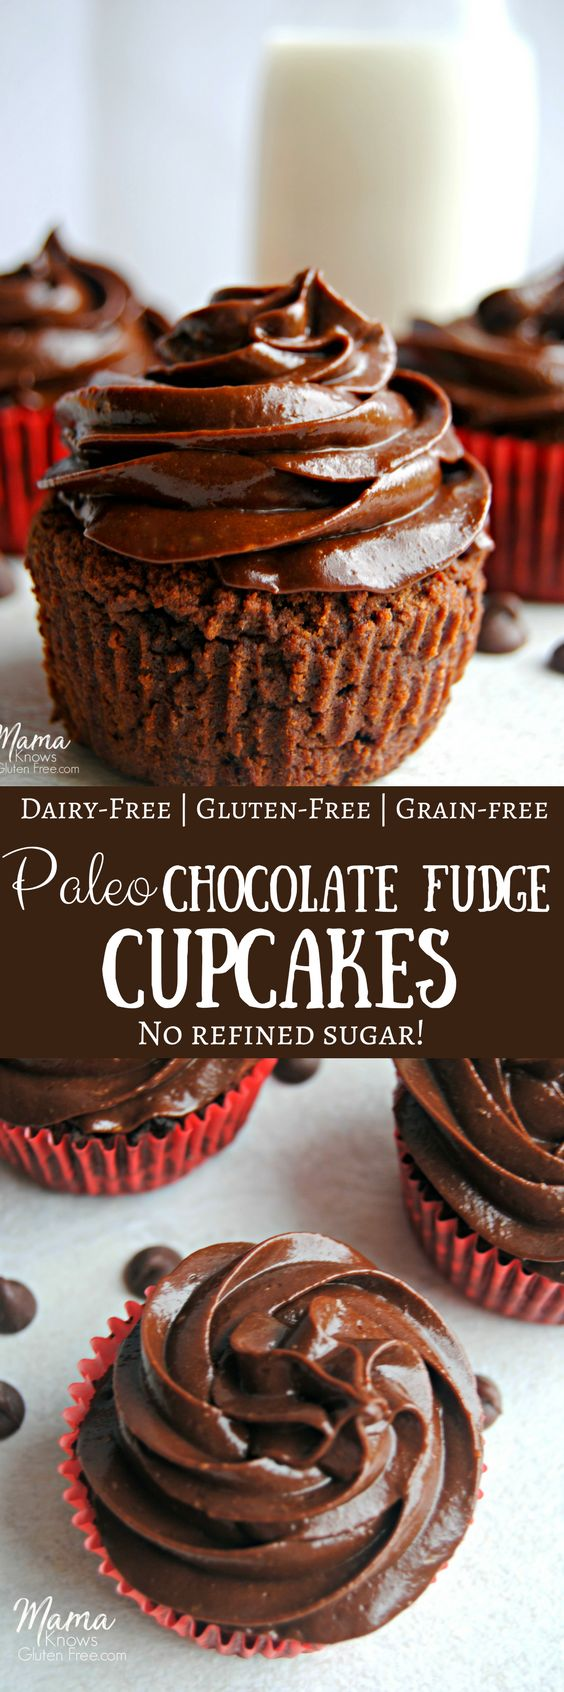 Paleo Chocolate Fudge Cupcakes. My easy and super moist Paleo chocolate fudge cupcakes will satisfy your chocolate cake cravings. Made with simple and healthy ingredients. Gluten-free, dairy-free, gra (Gluten Free Recipes Cupcakes)